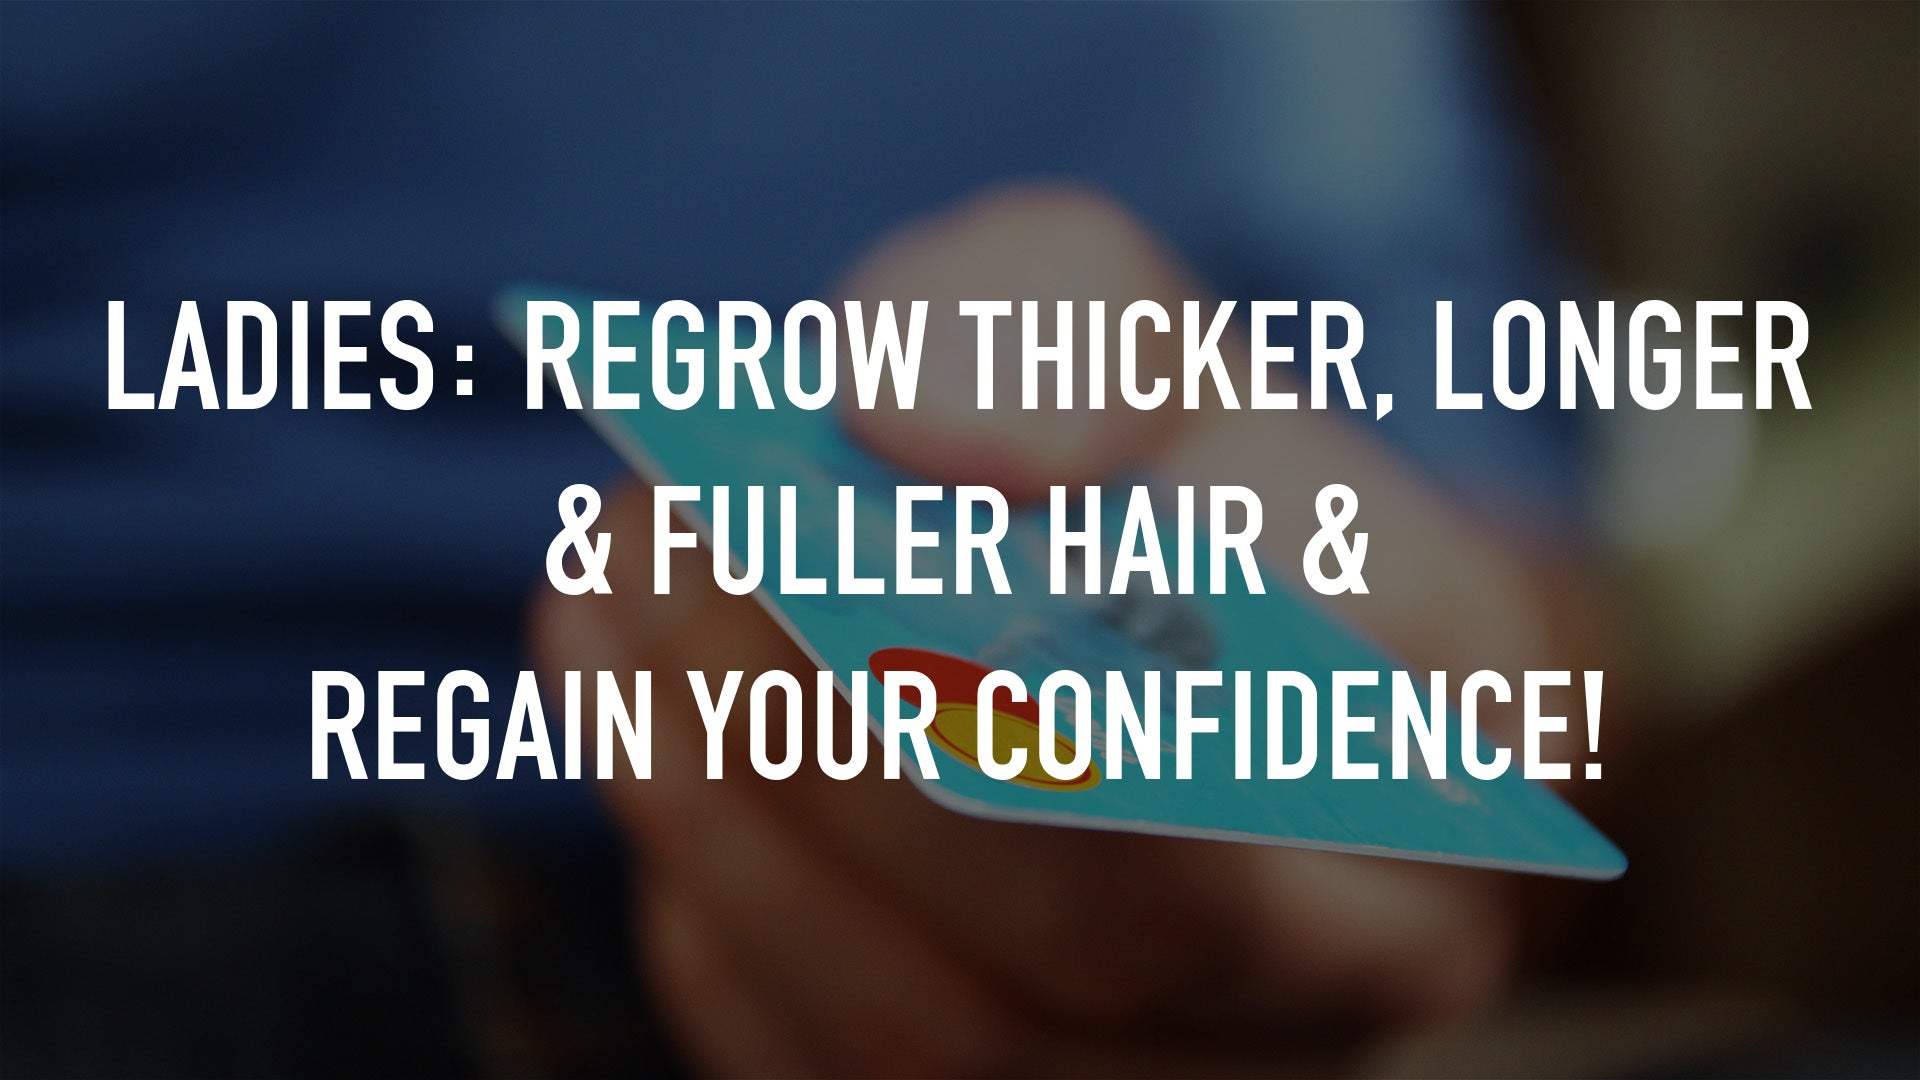 Ladies: Regrow Thicker, Longer & Fuller Hair & Regain Your Confidence!